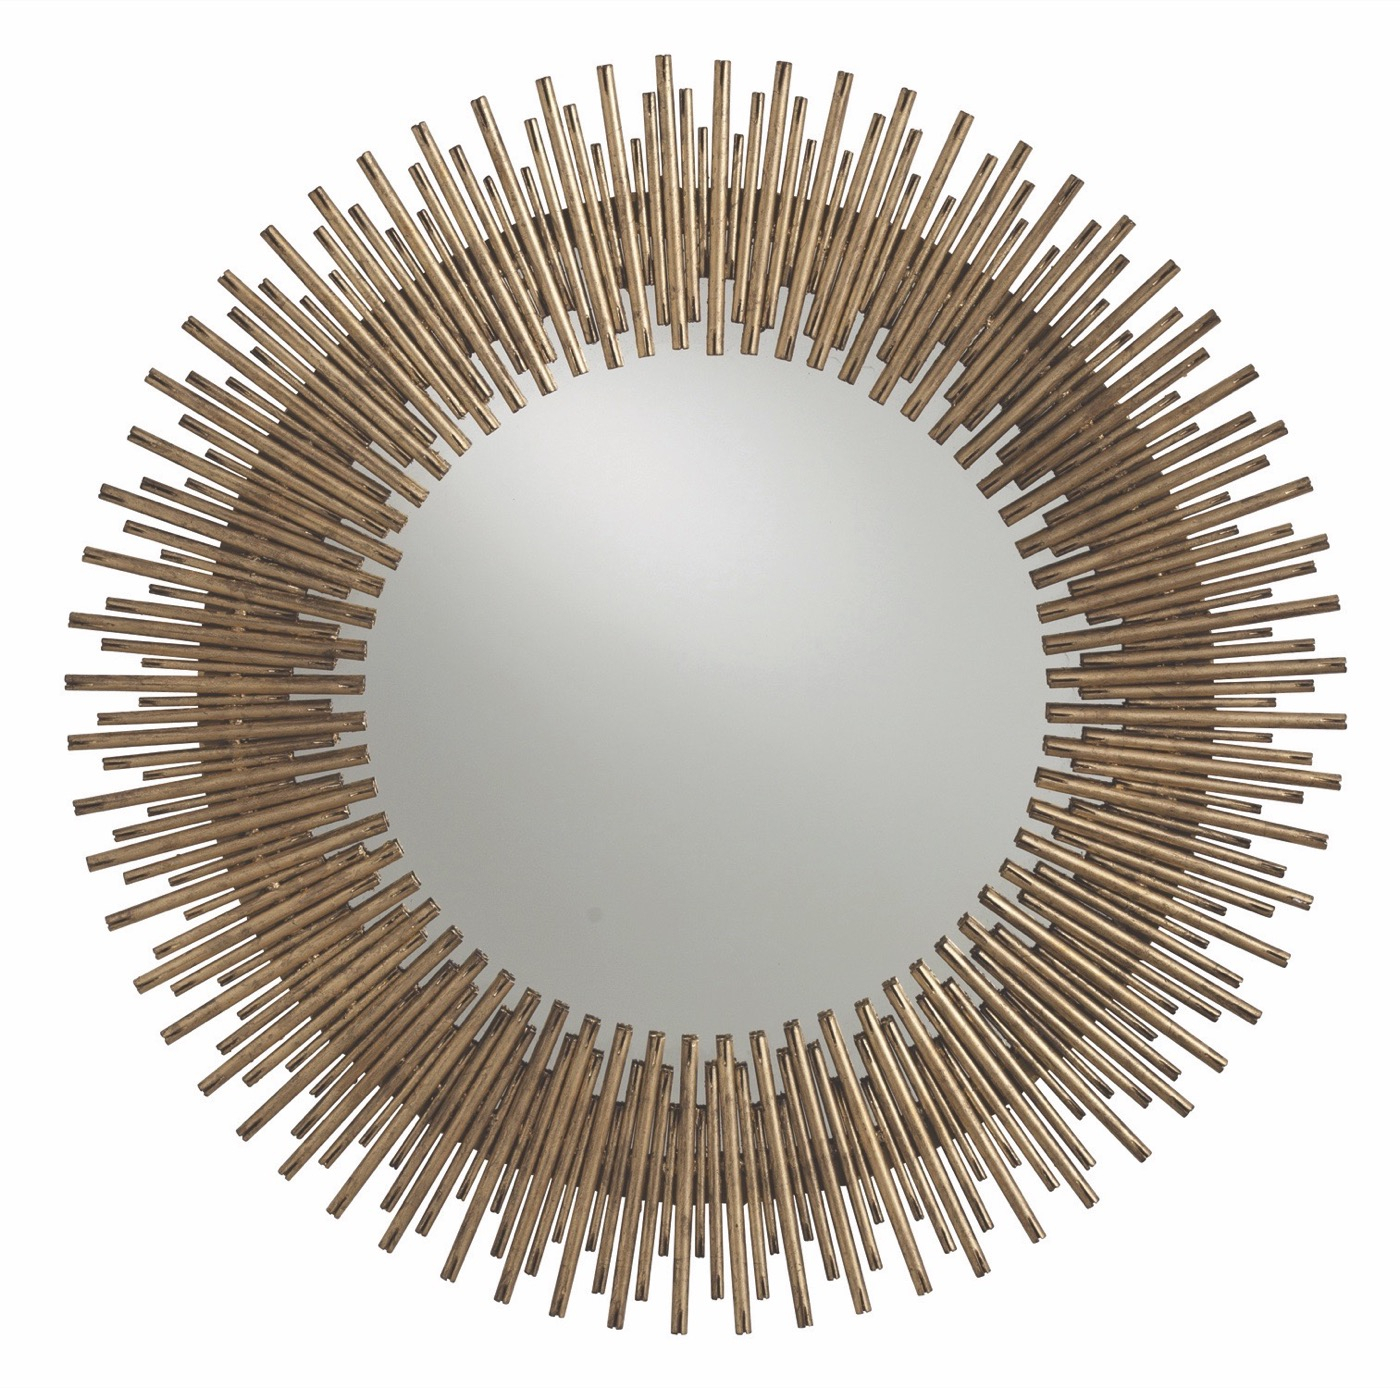 Kentwood Round Wall Mirror | Gold Pertaining To Kentwood Round Wall Mirrors (Photo 5 of 30)